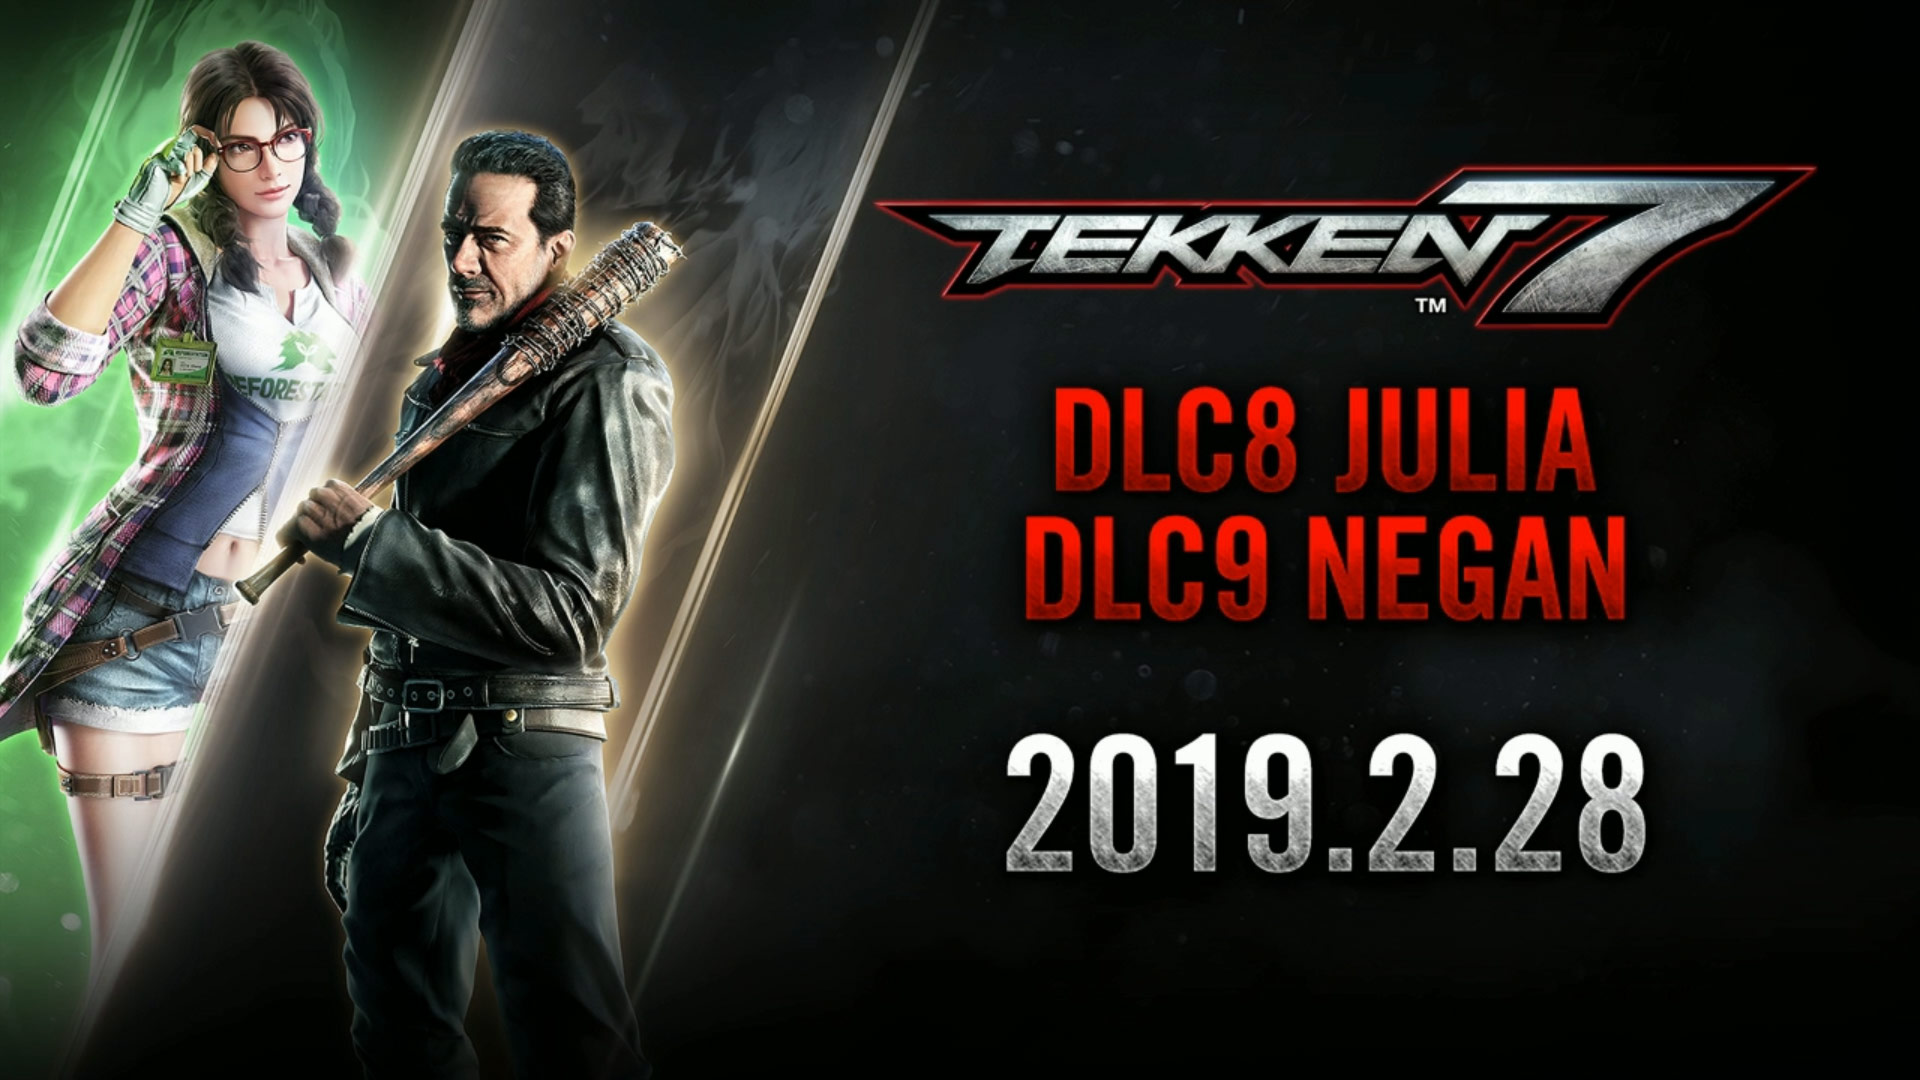 Tekken 7 Julia and Negan Reveal Screenshots 12 out of 12 image gallery